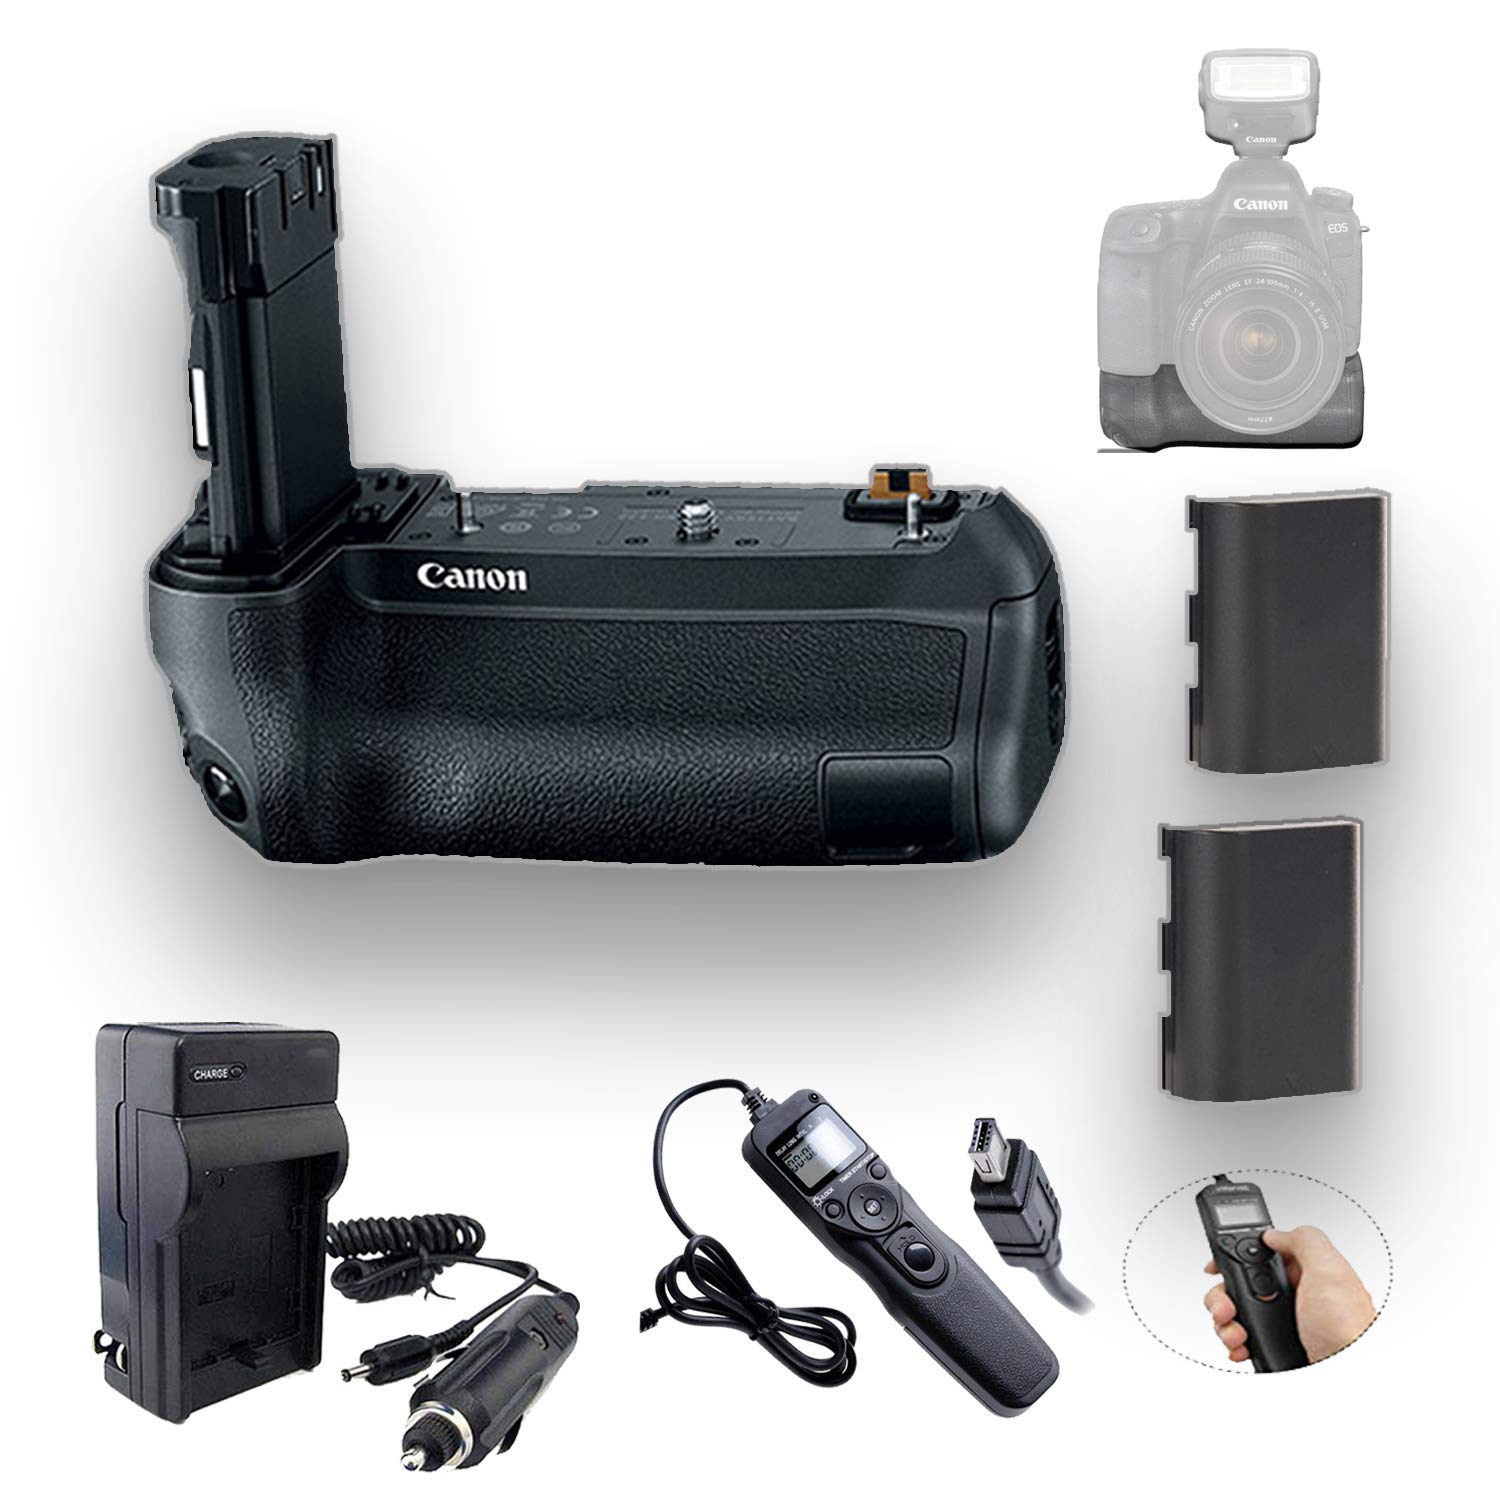 Canon BG-E22 Battery Grip with Accessory Kit